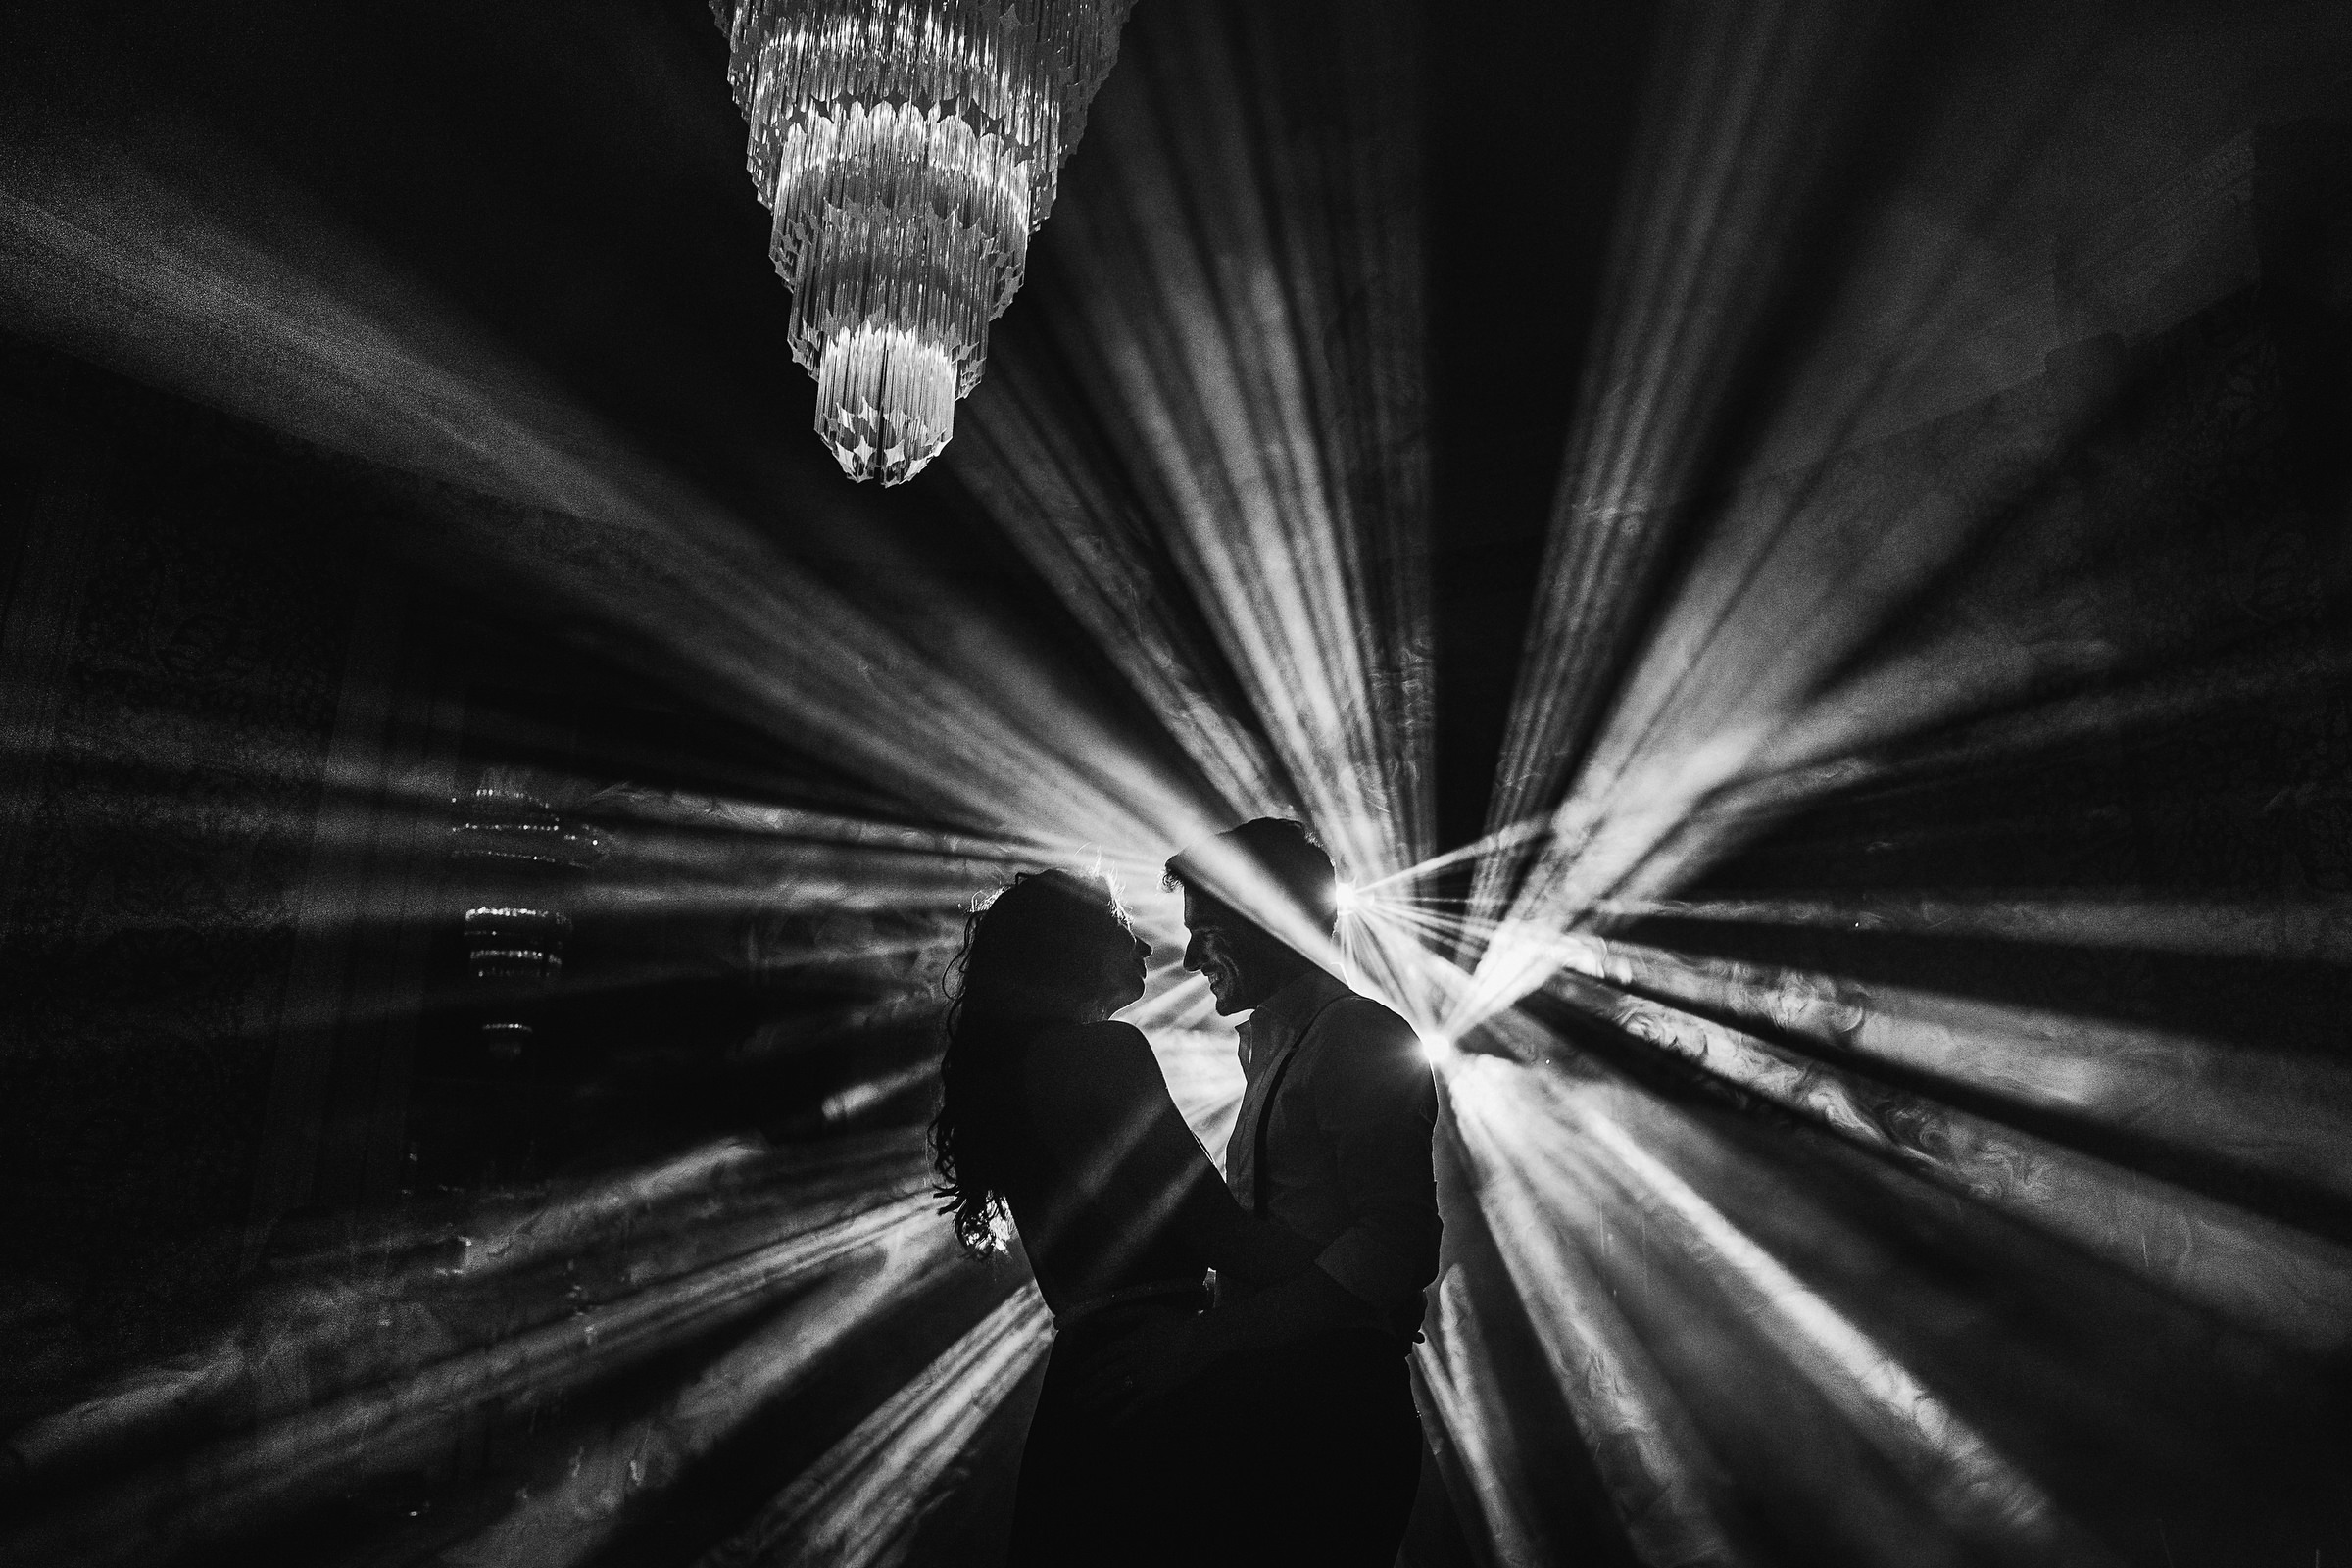 Silhouette of couple in dramatic reception lighting photo by Andy Gaines Photography